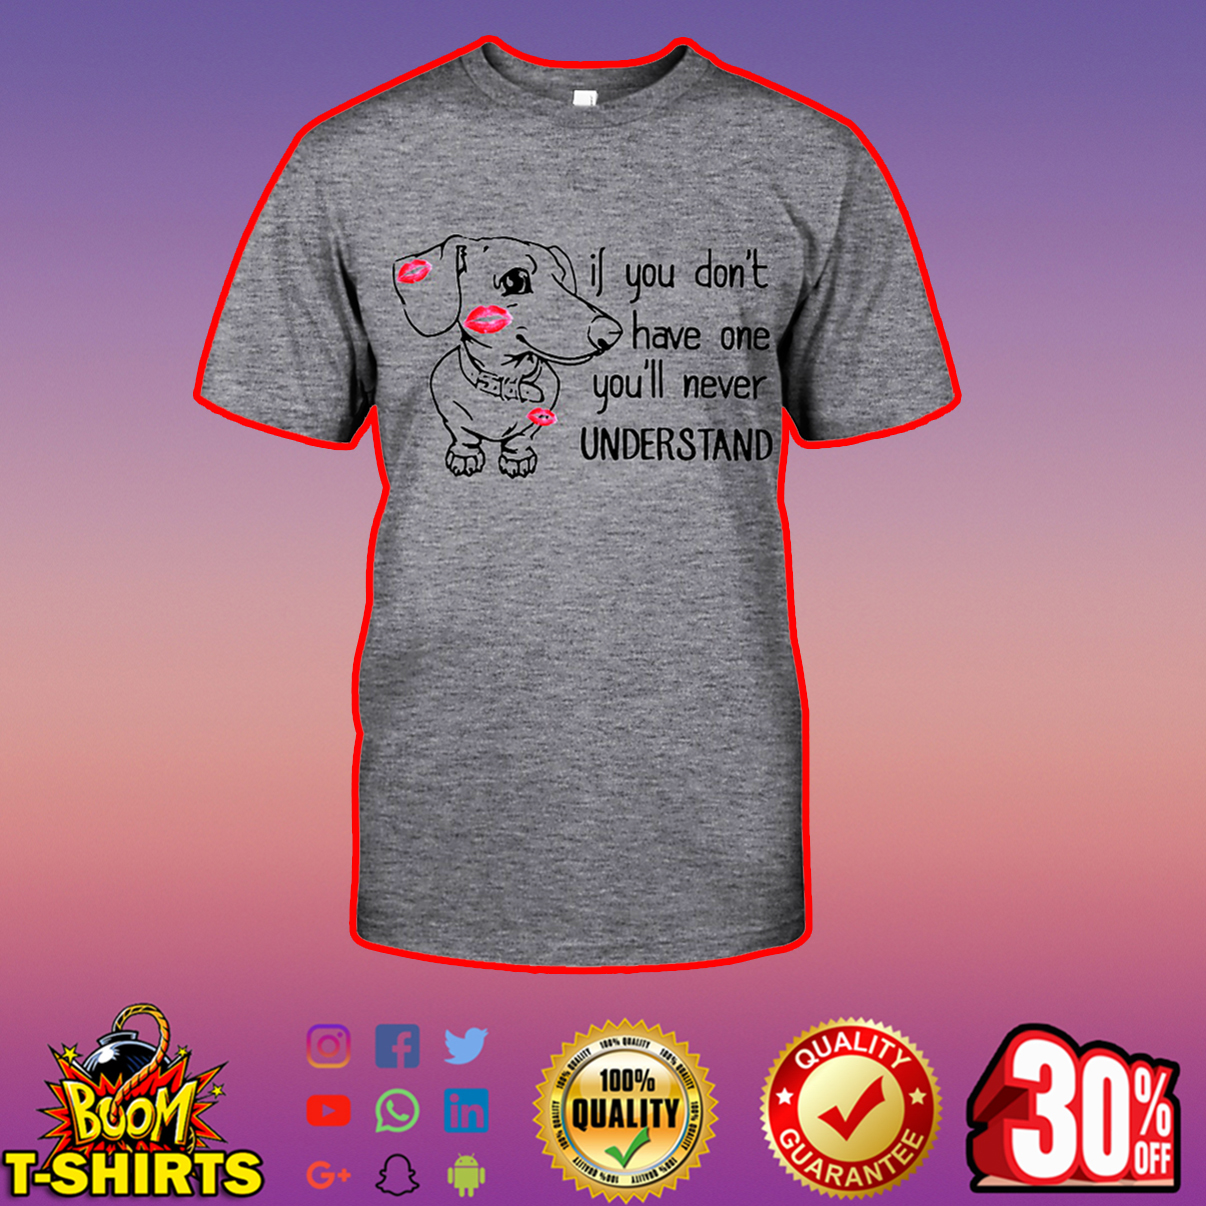 Dachshund If you don't have one you'll never understand shirt